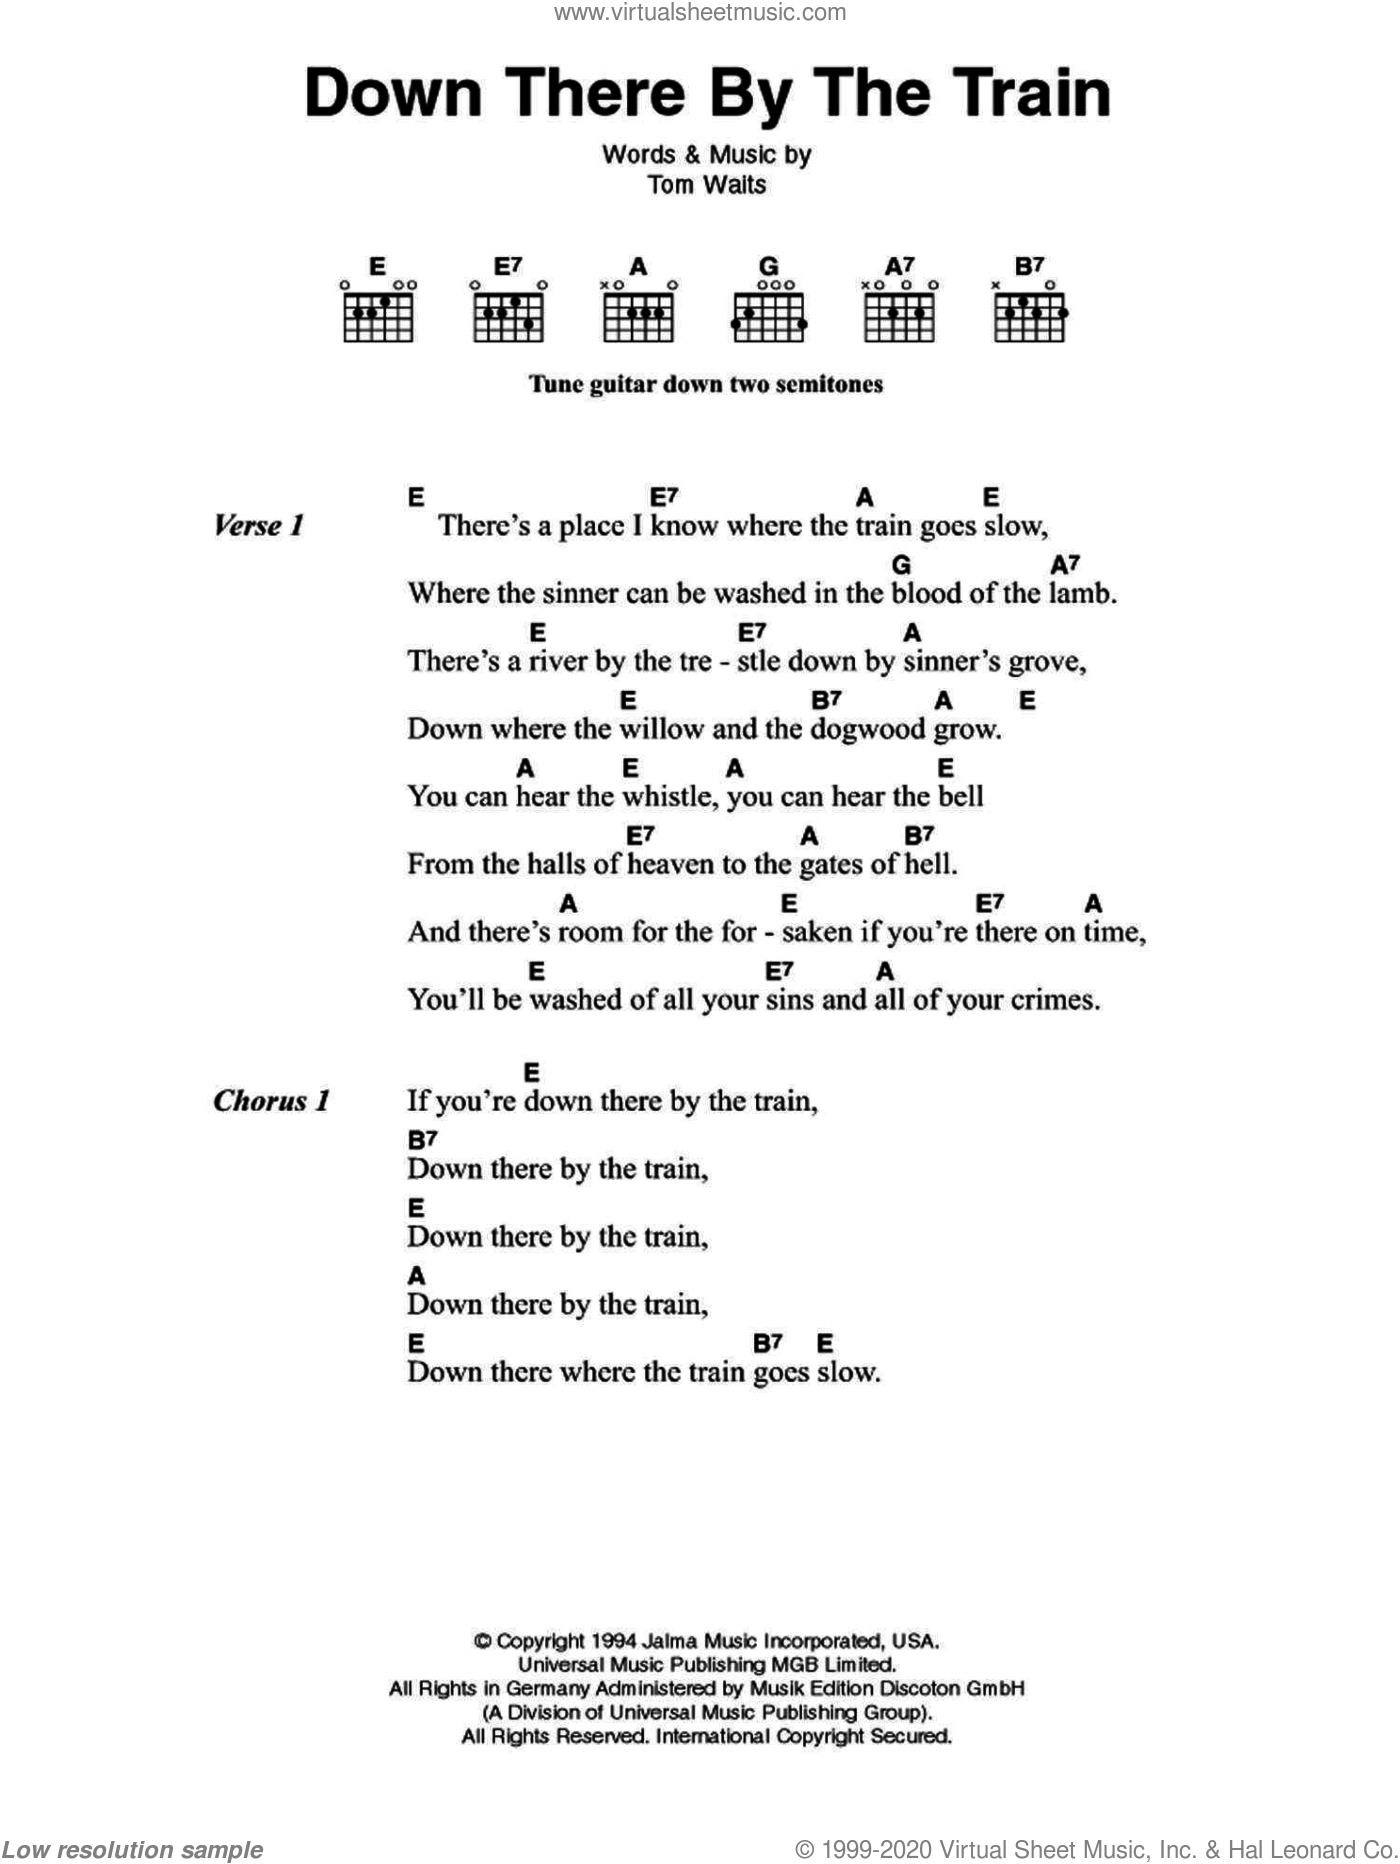 Down There By The Train sheet music for guitar (chords) by Tom Waits